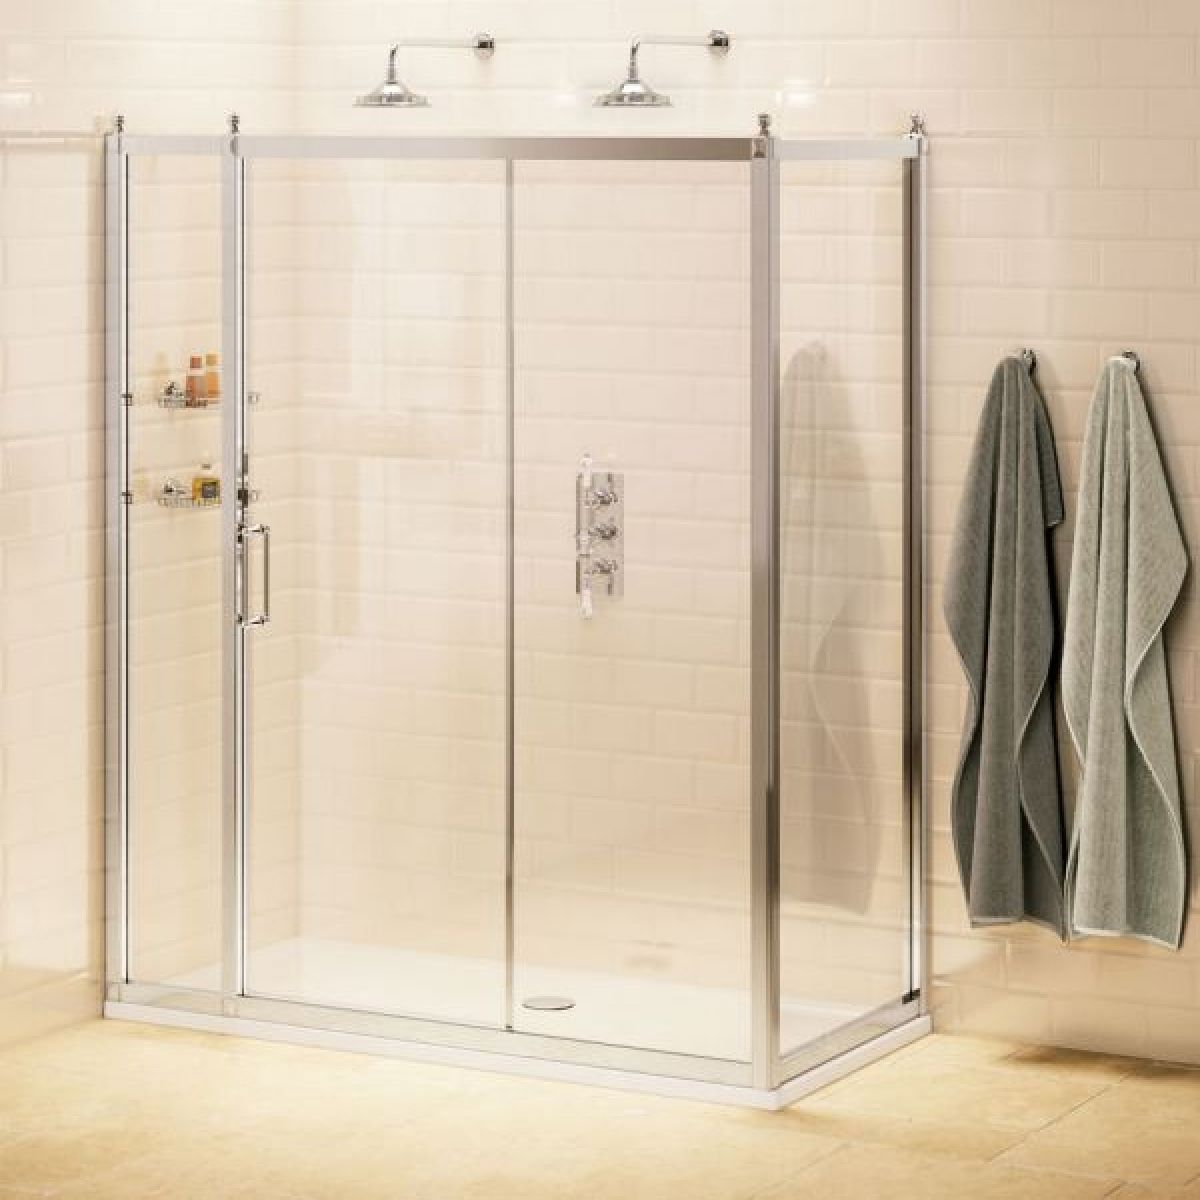 Burlington Sliding Door Shower Enclosure with Optional Inline Panel and Side Panel